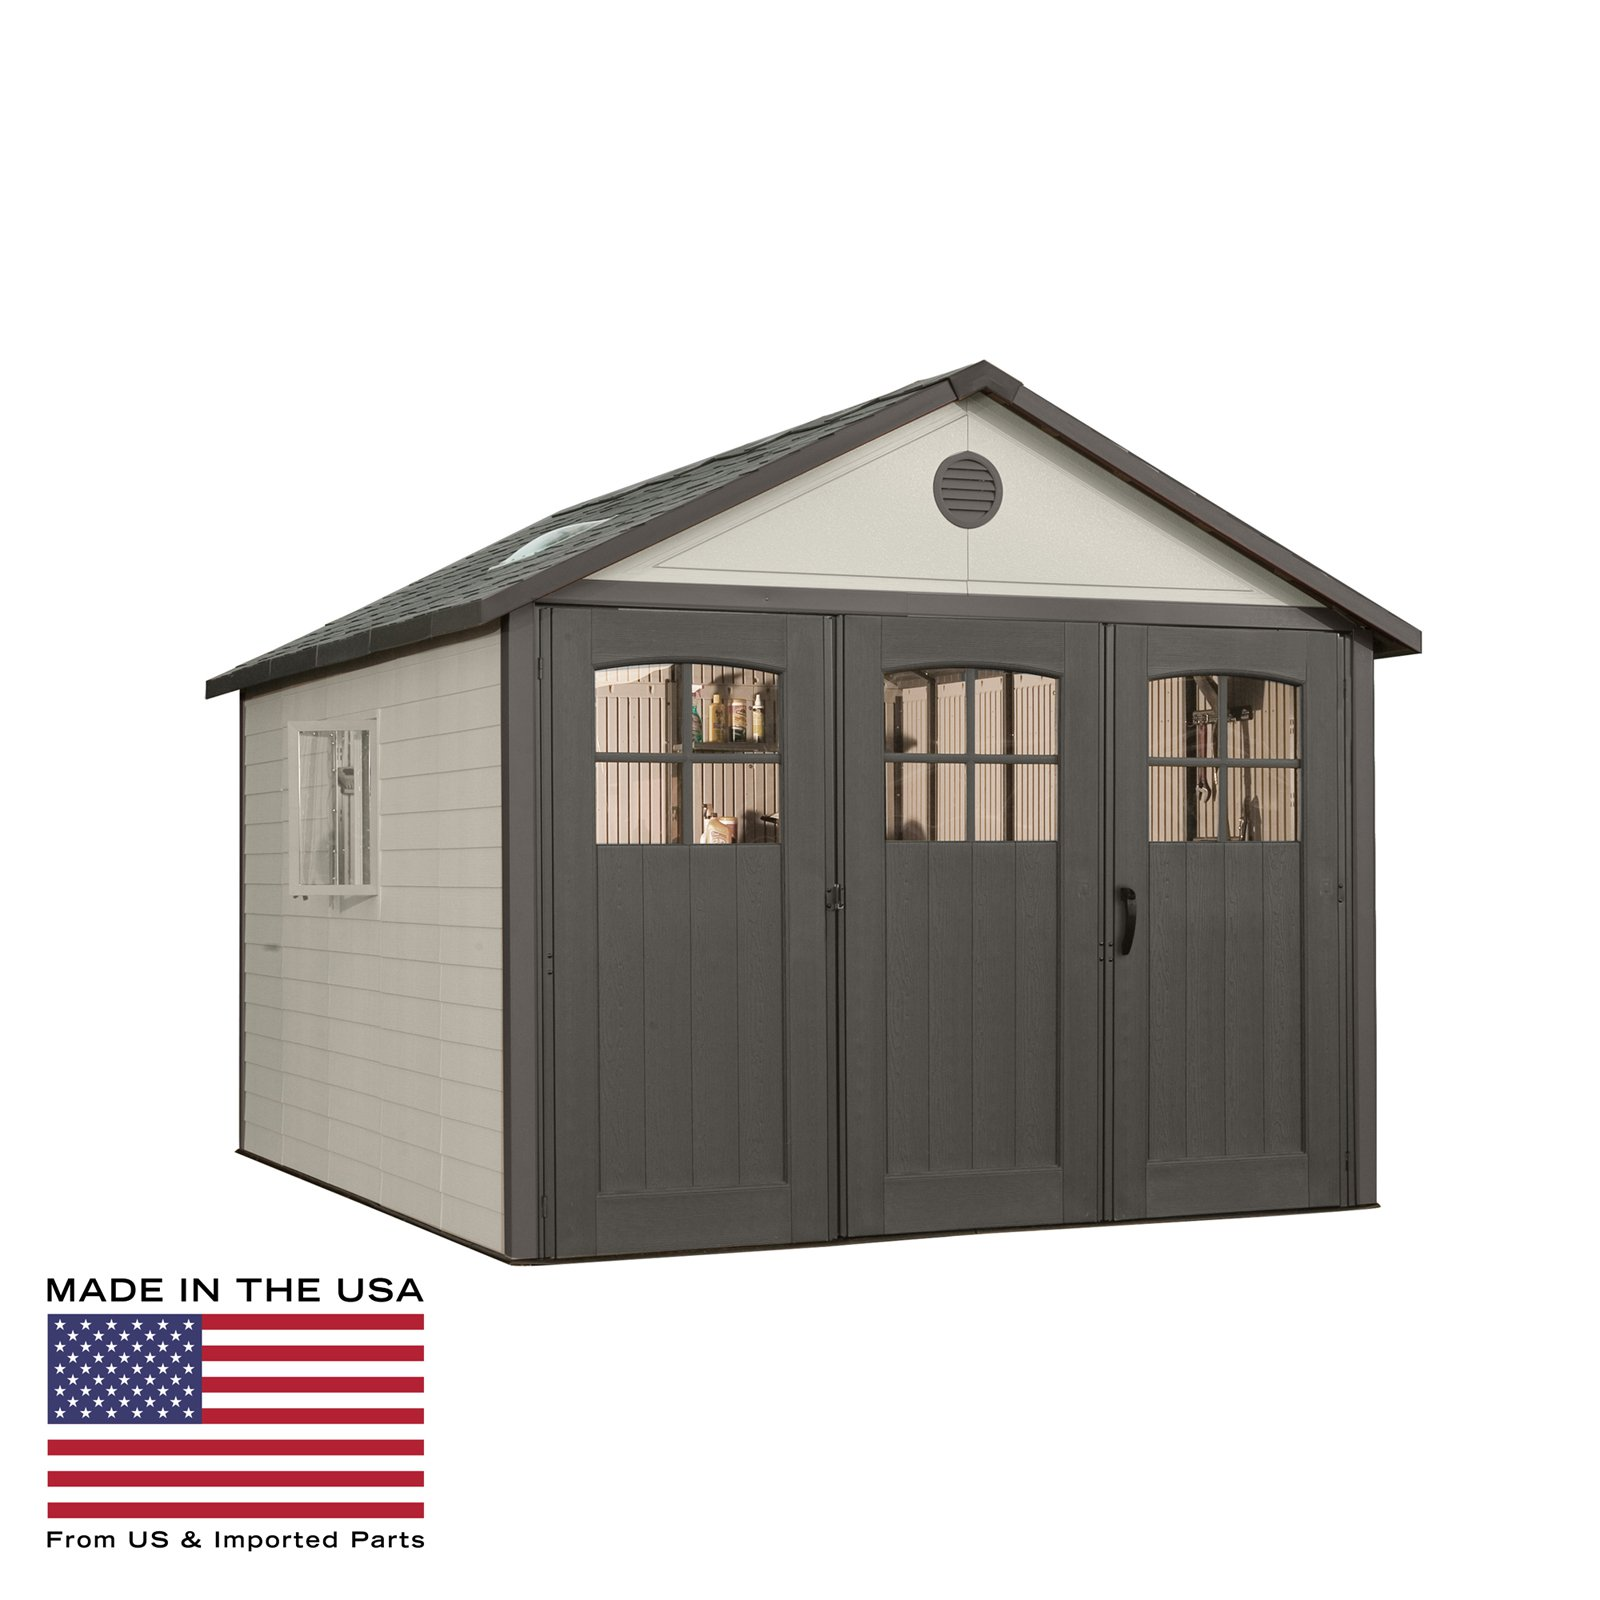 Lifetime 11 x 21 ft. Outdoor Storage Shed with Tri Fold Doors